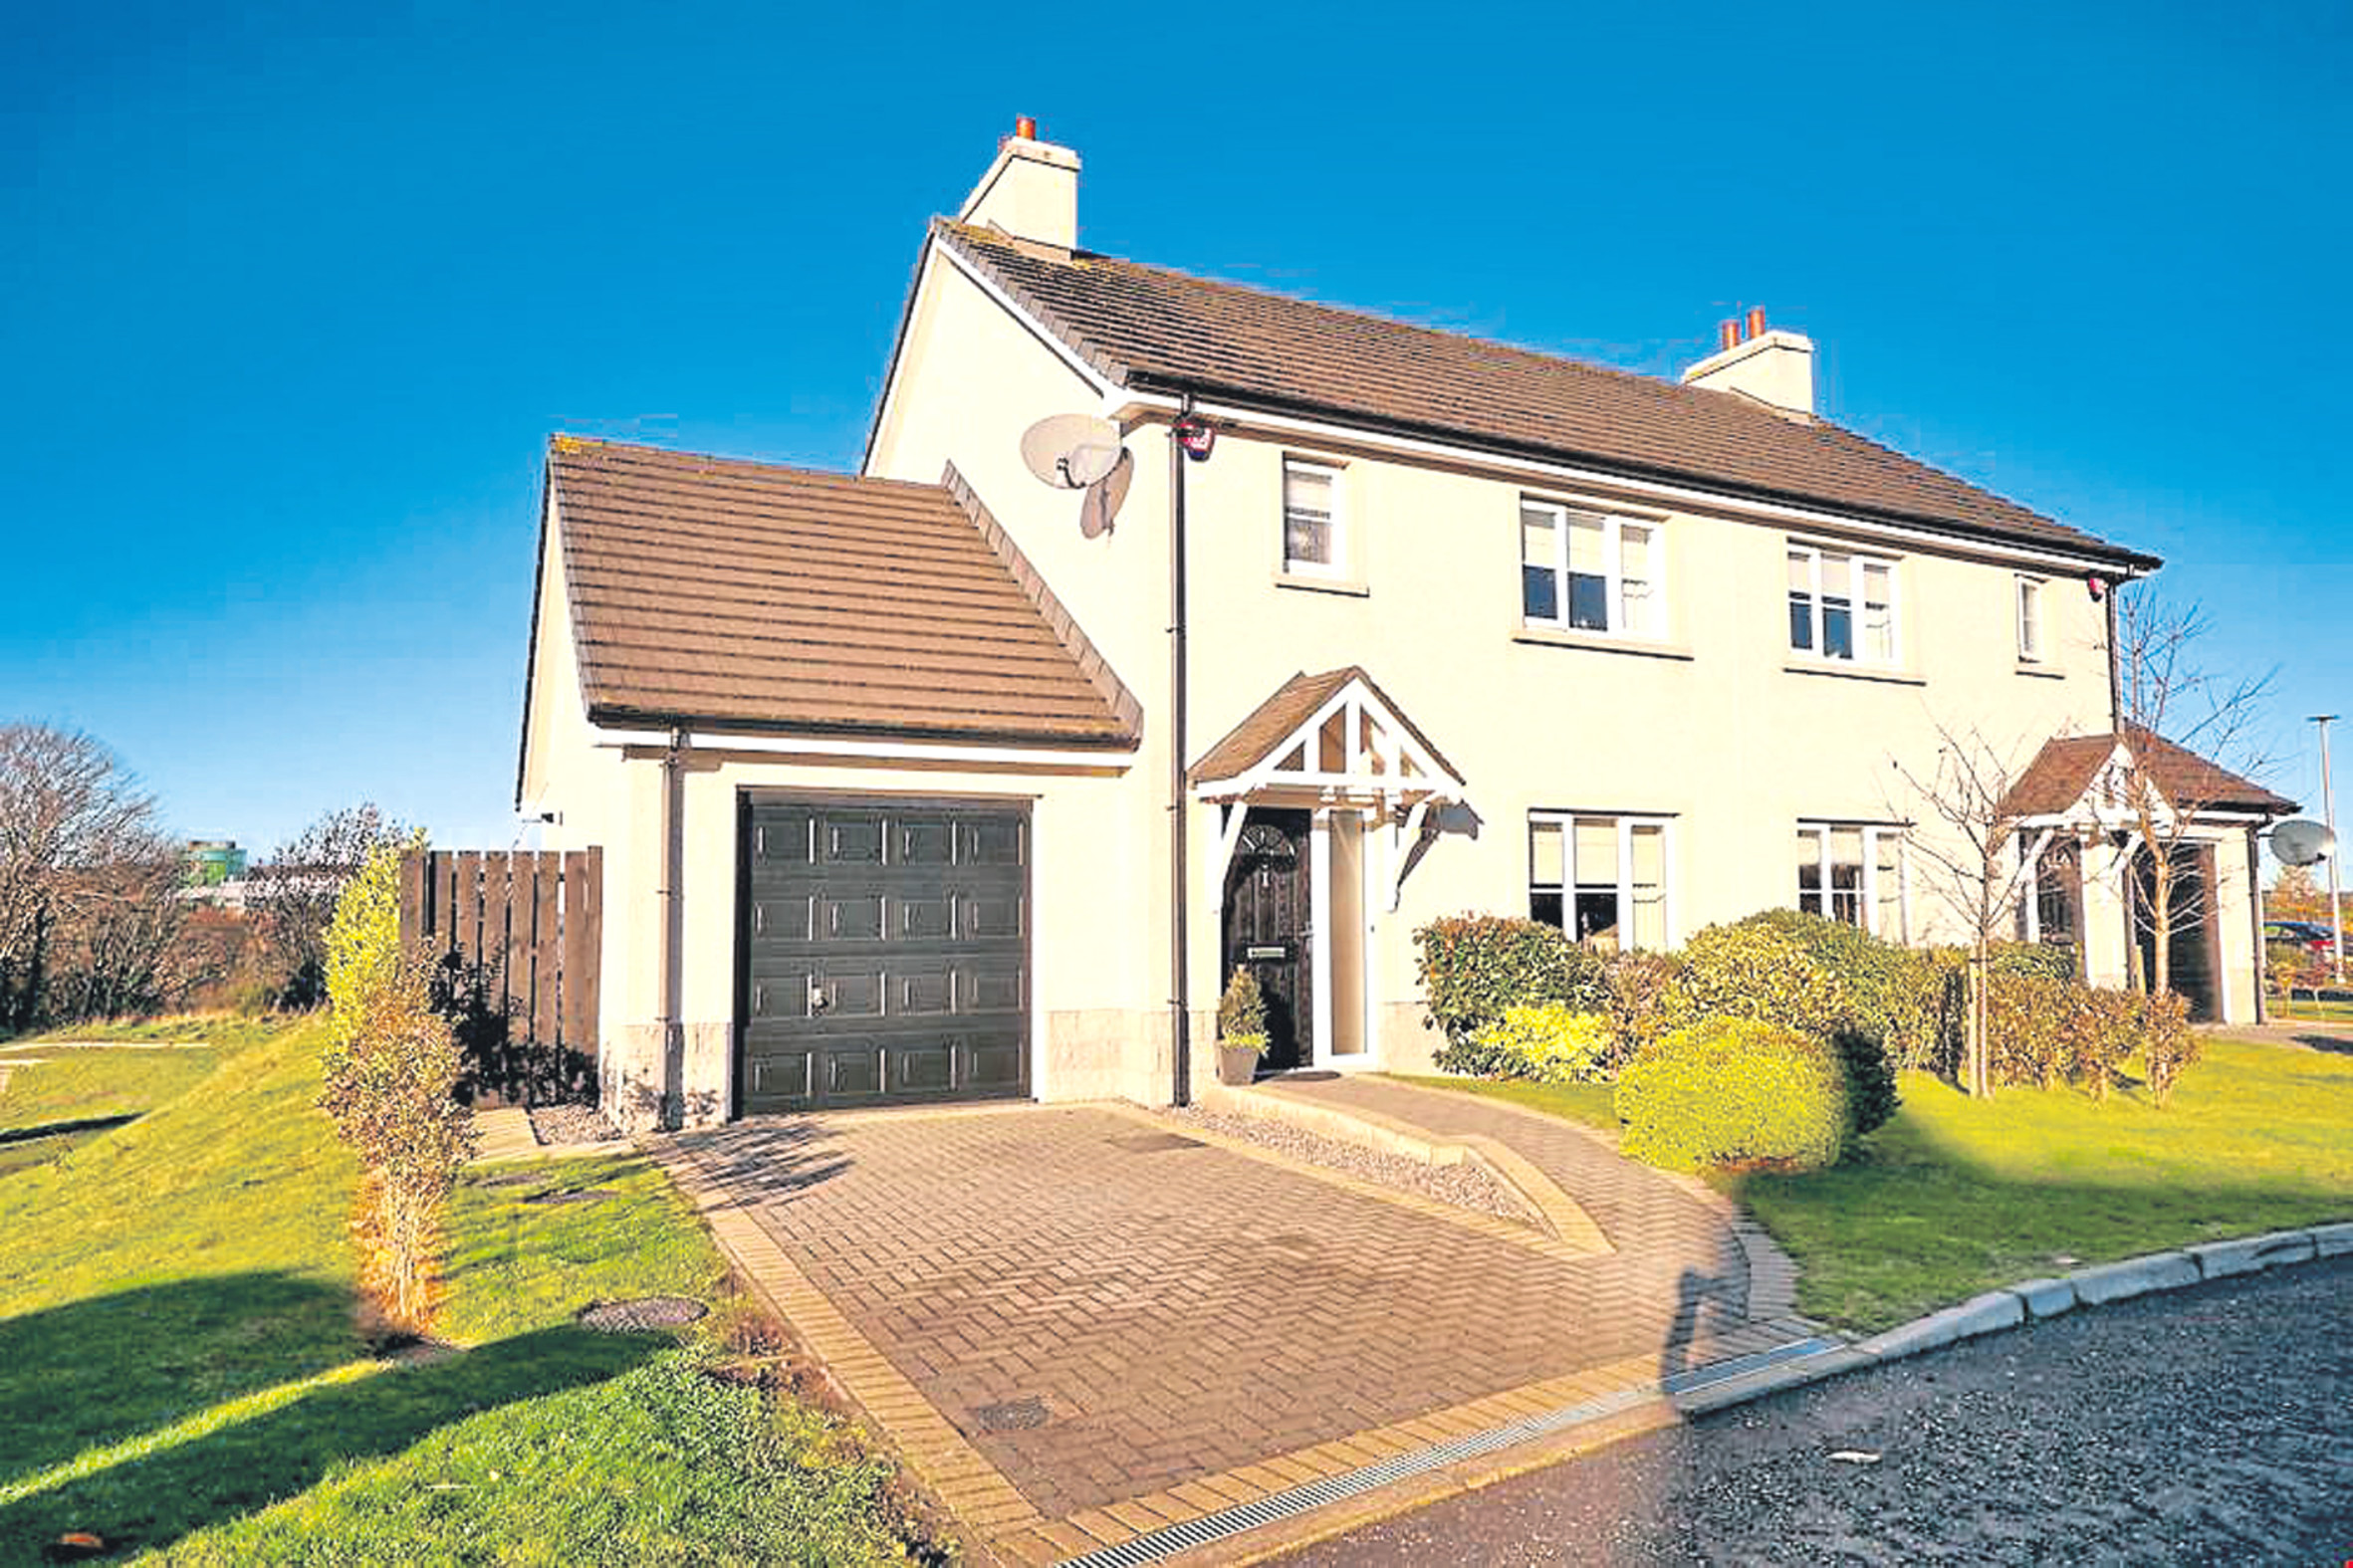 1 Deeside View, you may like feature, November 23